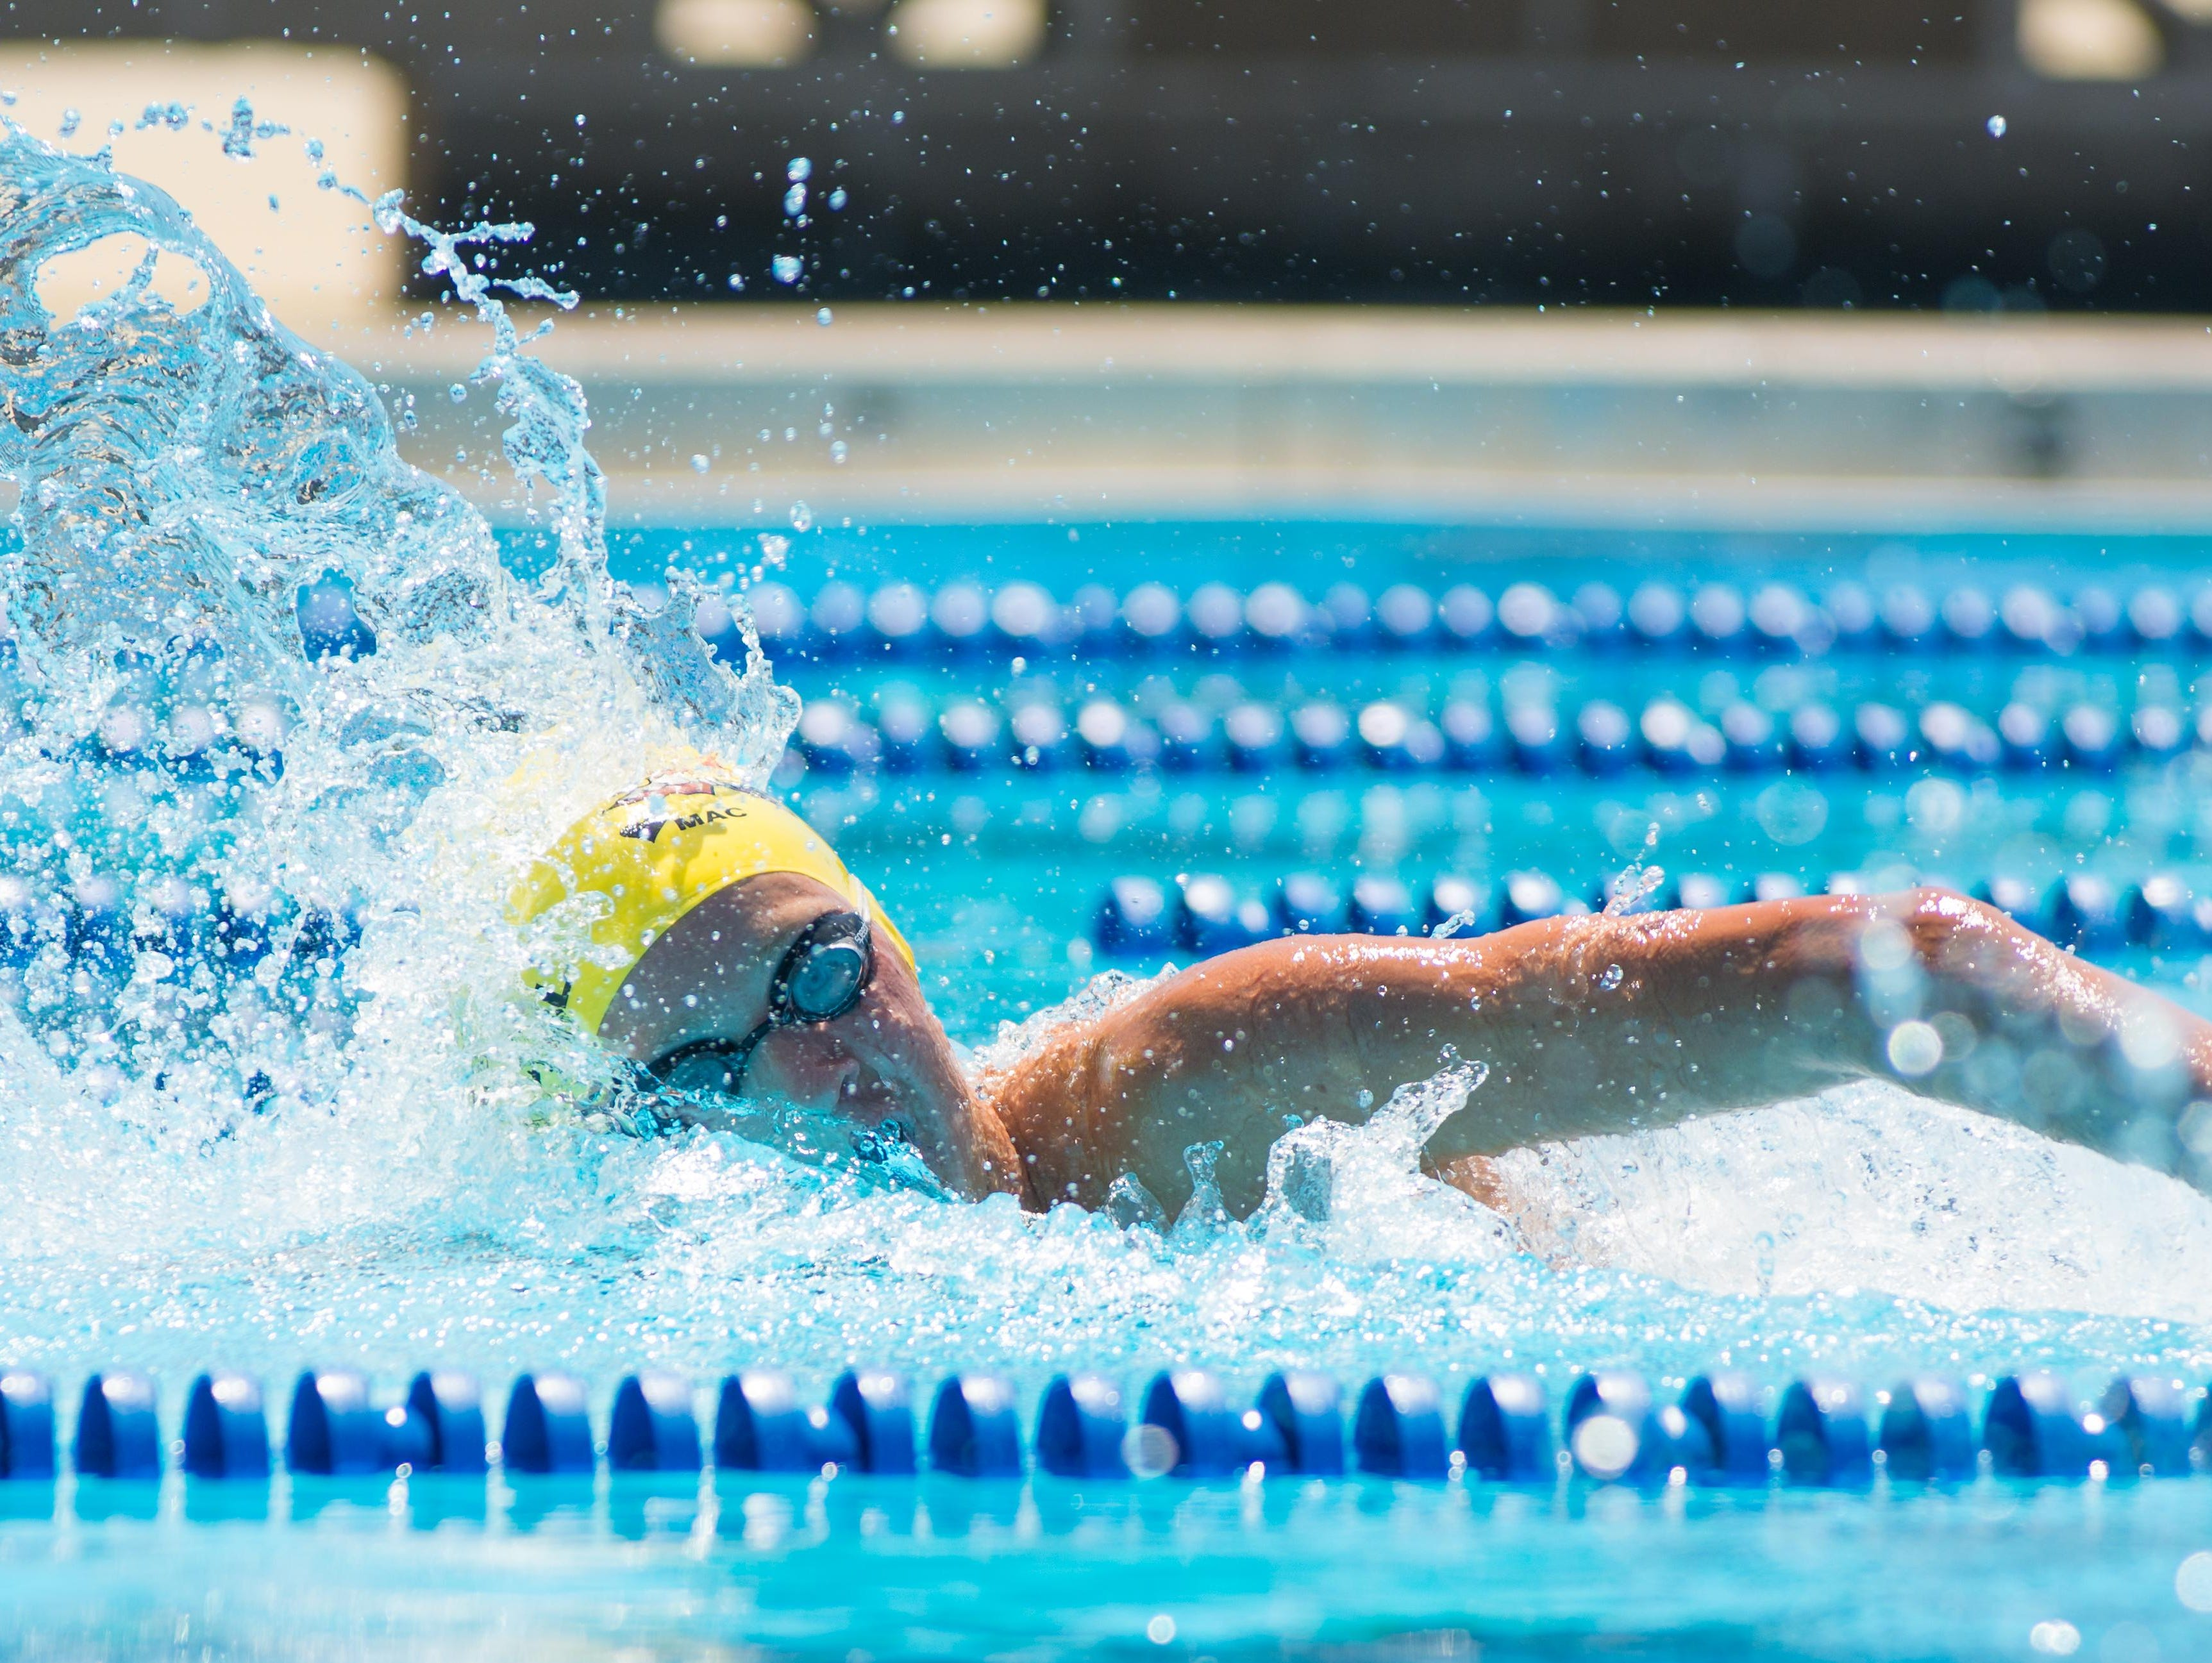 Chiles sophomore John Yambor-Maul has learned to love swimming, which coincides with a rise towards excellence.